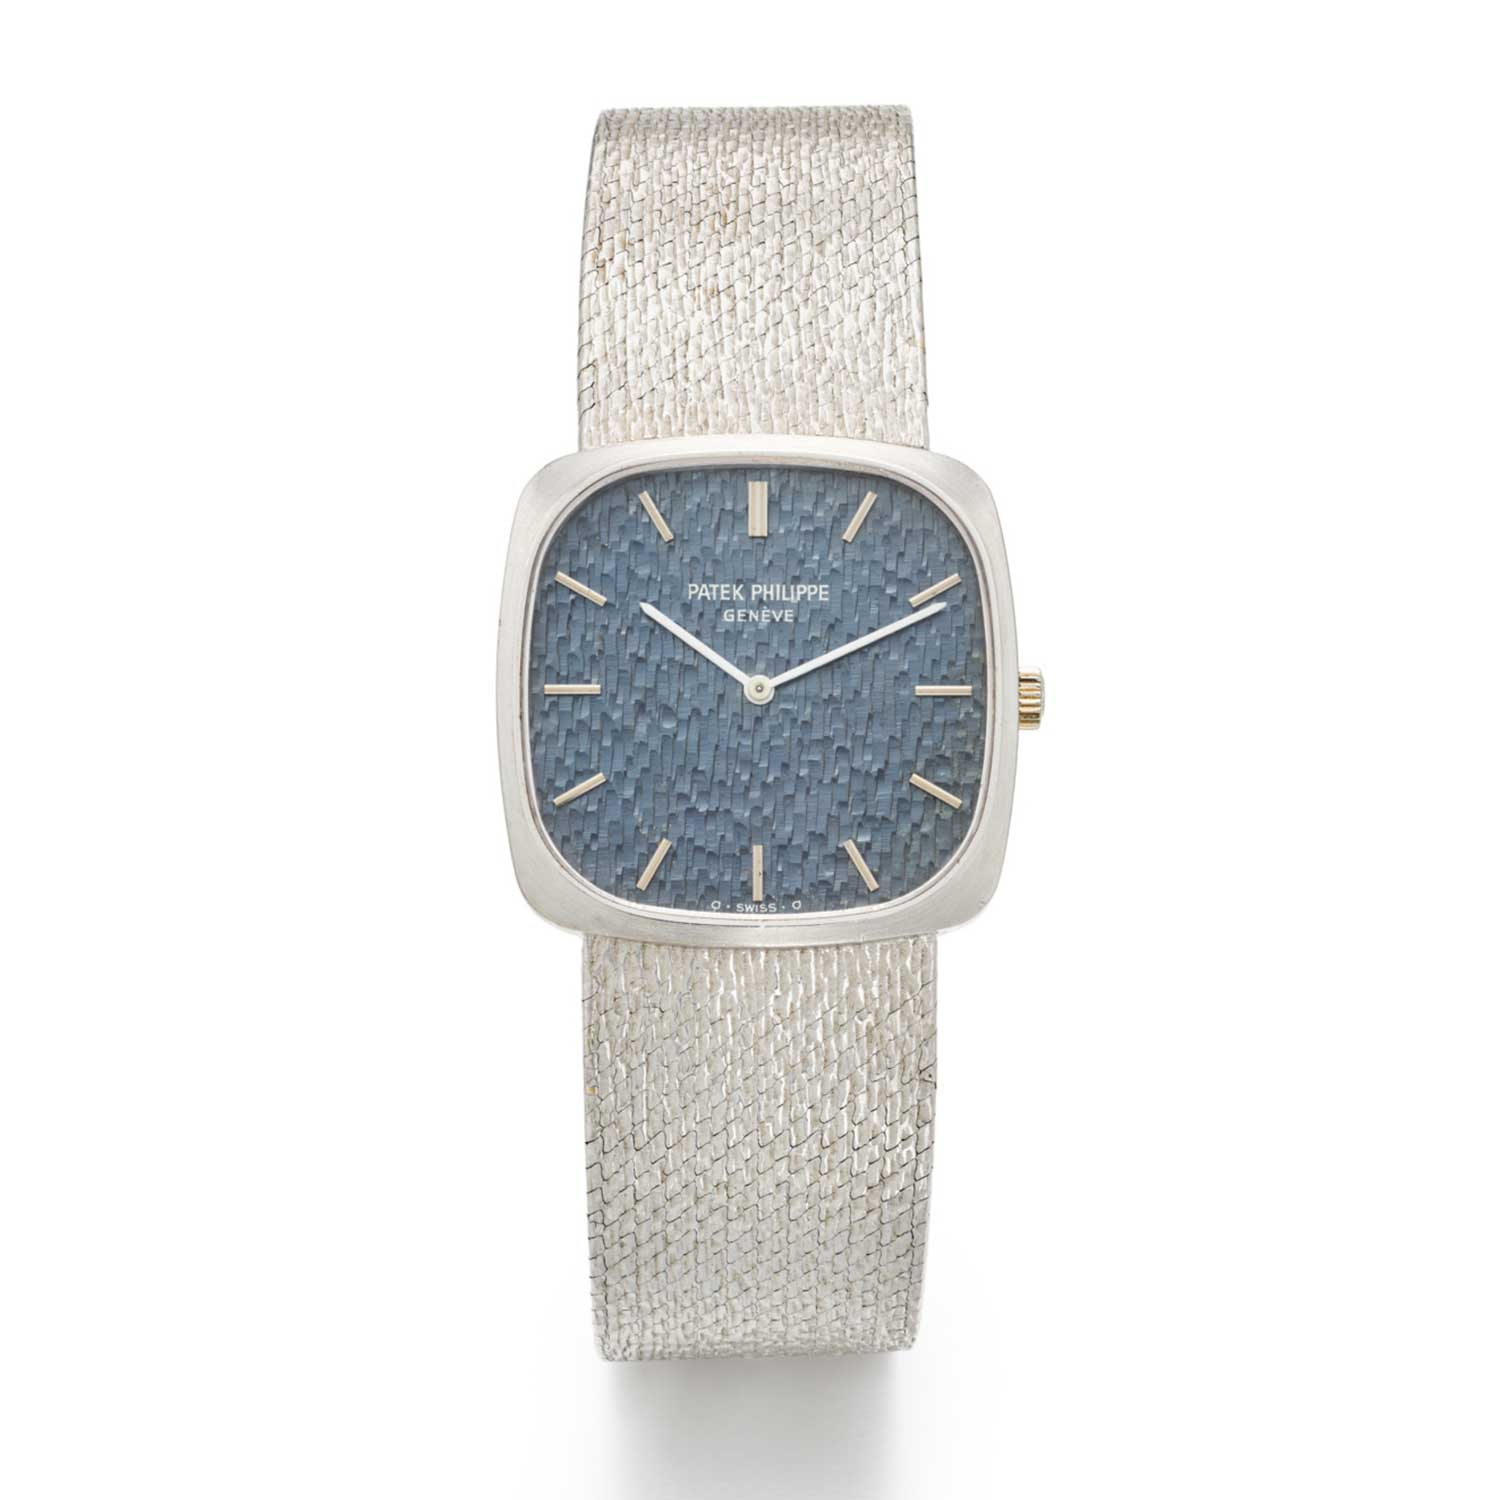 Lot 457: Patek Philippe Ref. 3566-1, Blue Structured Dial; 18K White Gold